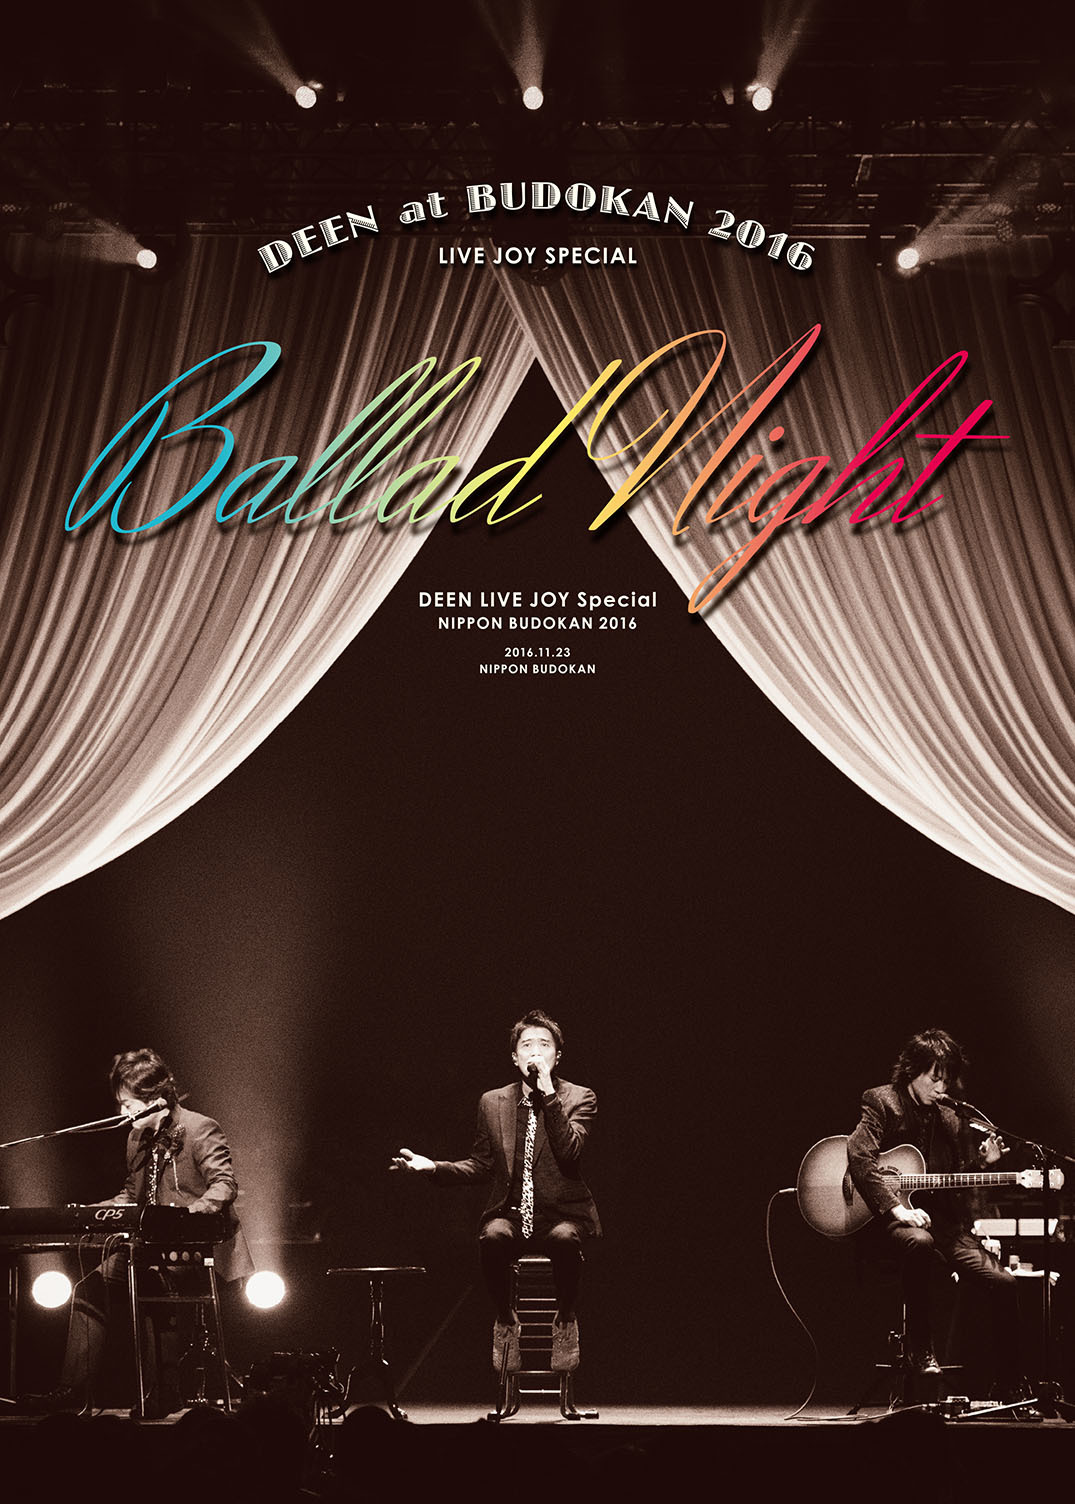 DEEN『DEEN at 武道館 2016 LIVE JOY SPECIAL ~Ballad Night~』DVD